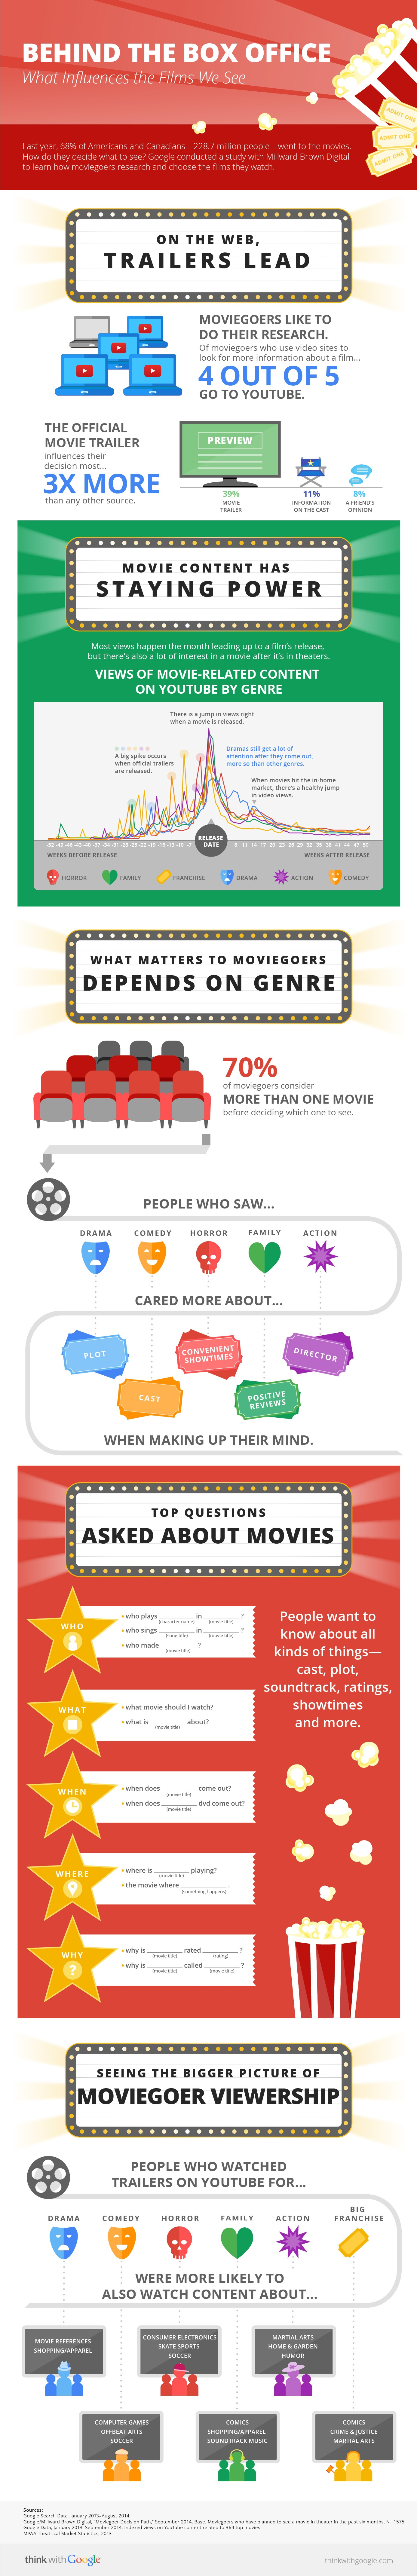 Movie Box Office Facts